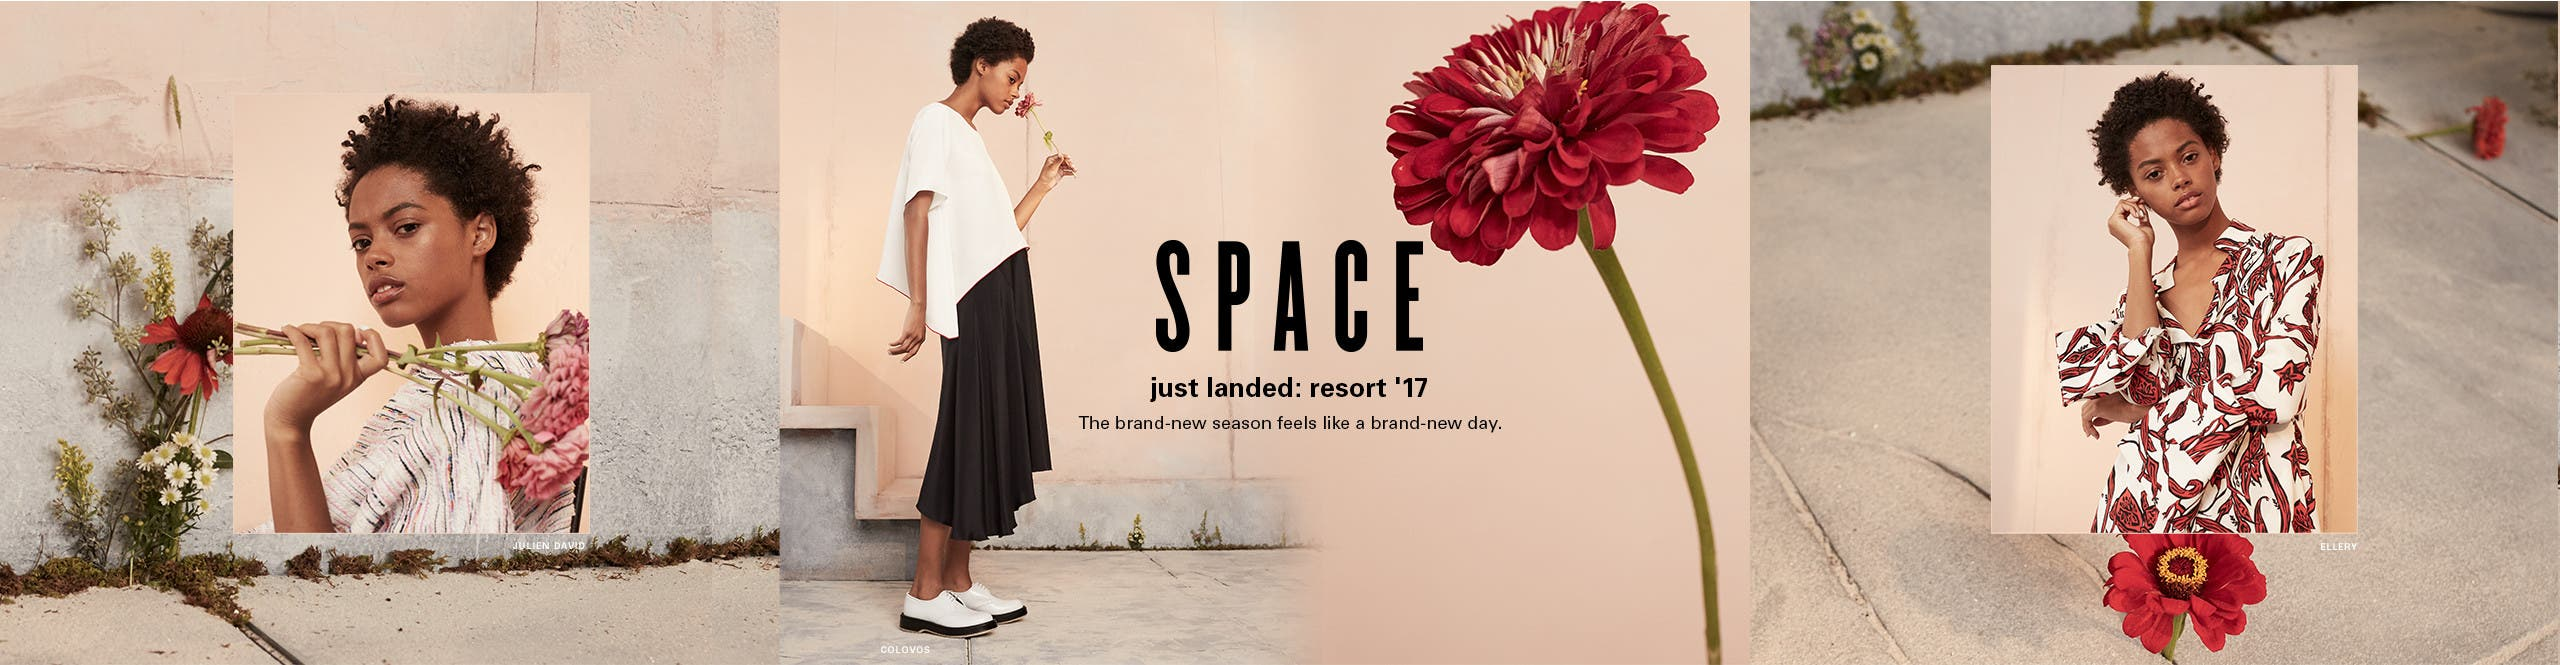 Just landed: resort 2017 from SPACE emerging and advanced designers. The brand-new season feels like a brand-new day.